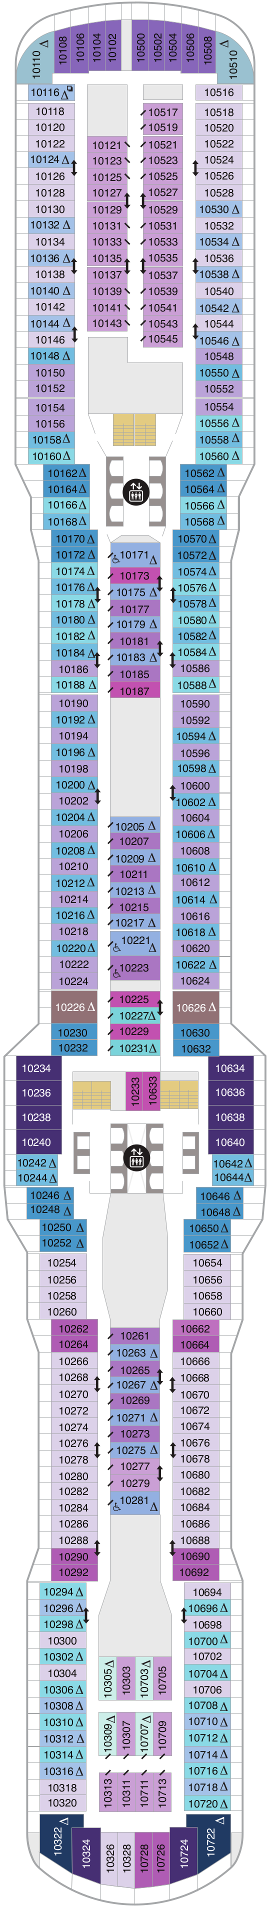 Odyssey Of The Seas Null Deck Plan